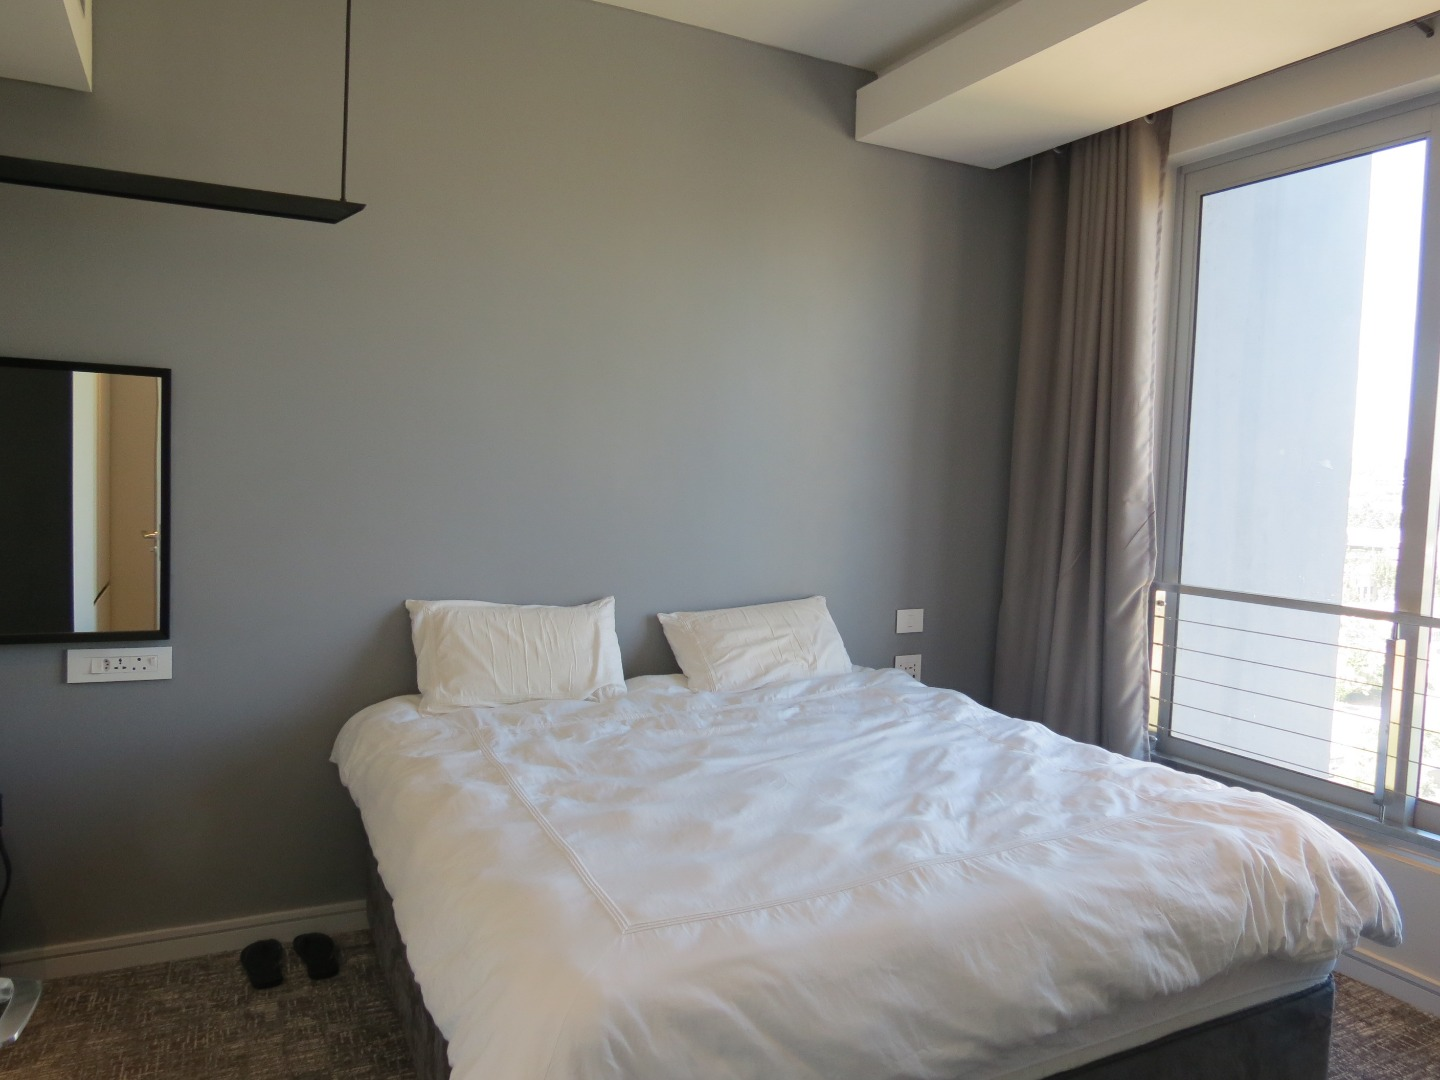 1 Bedroom Apartment Flat To Rent In Sandton Central Re Max Of Southern Africa